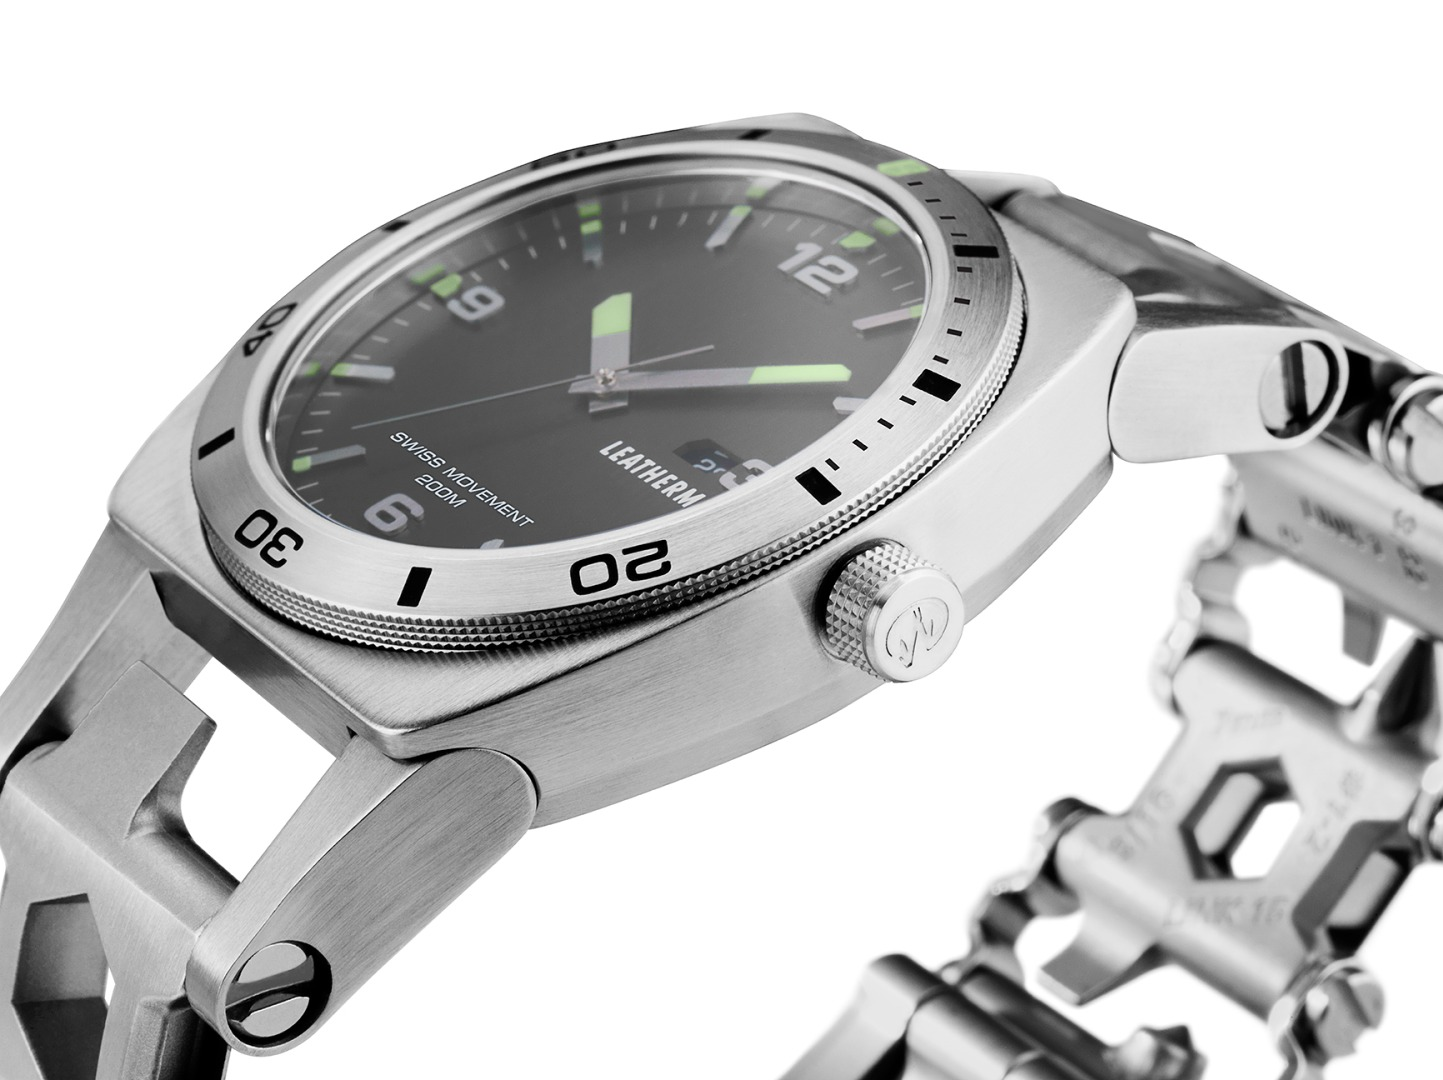 Leatherman adds a watch to wearable multitool range